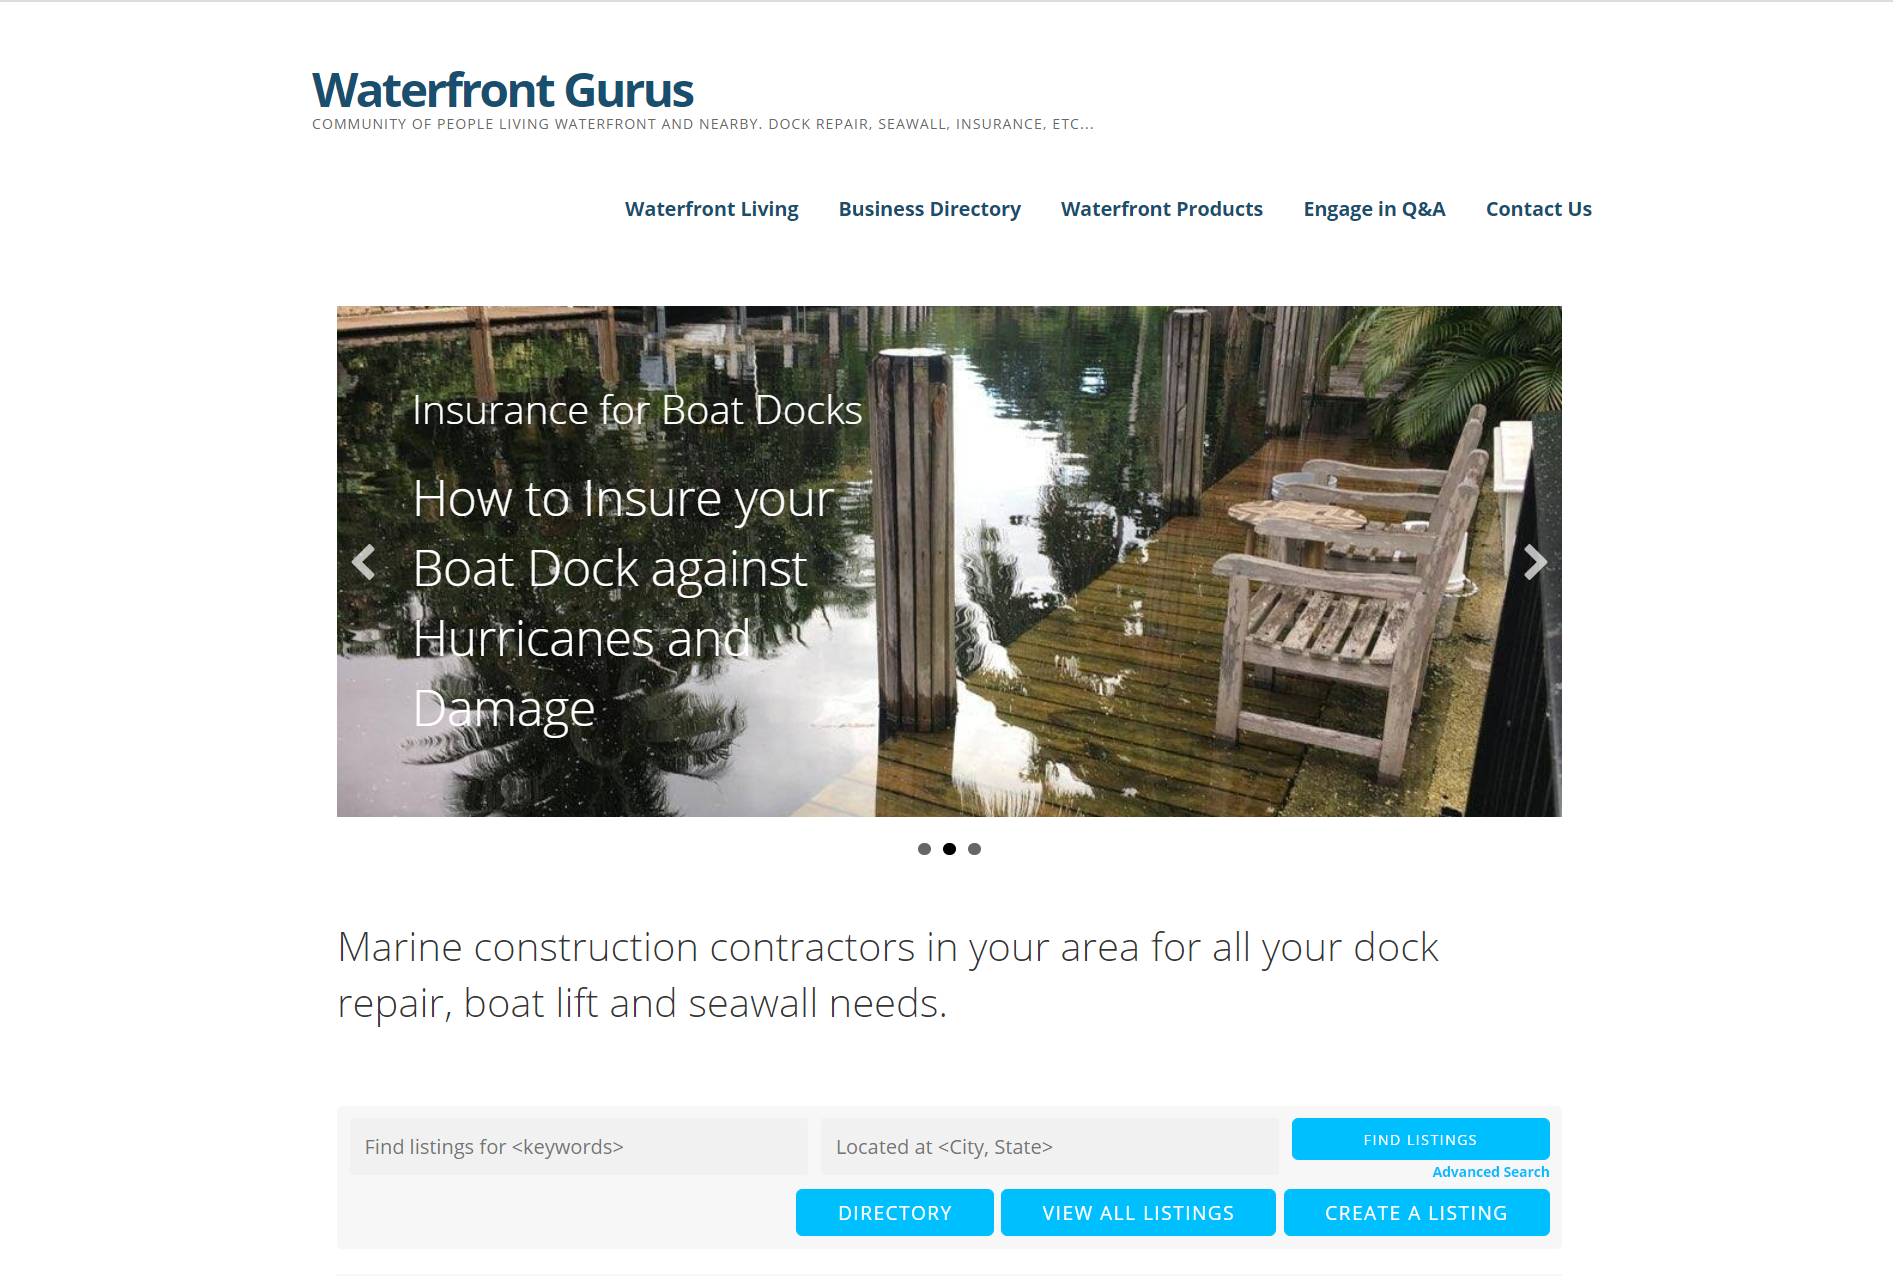 Waterfront Gurus directory homepage, one of the best business directory websites.